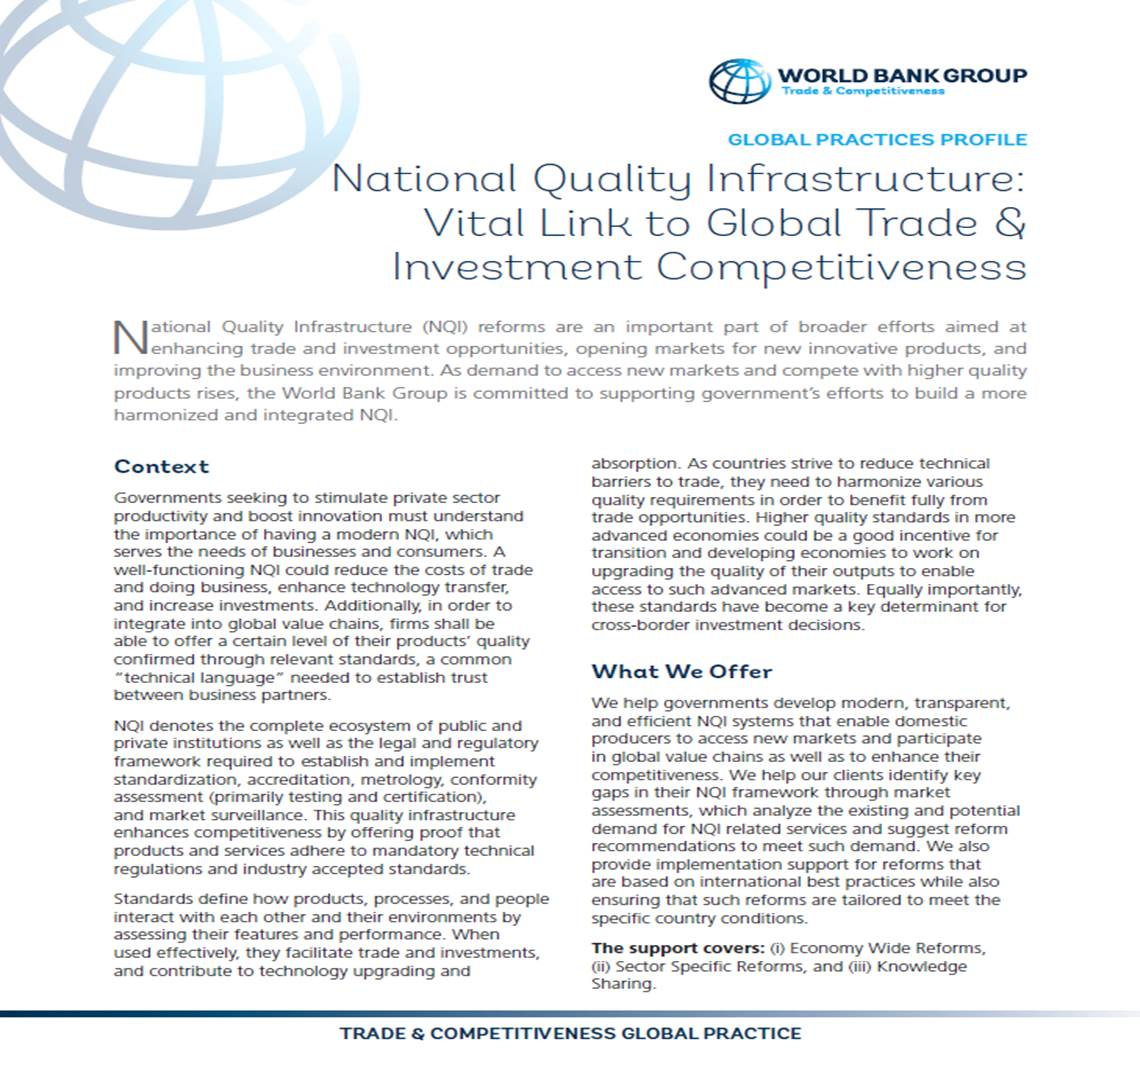 National Quality Infrastructure: Vital Link to Global Trade and Investment Competitiveness (World Bank, 2016)